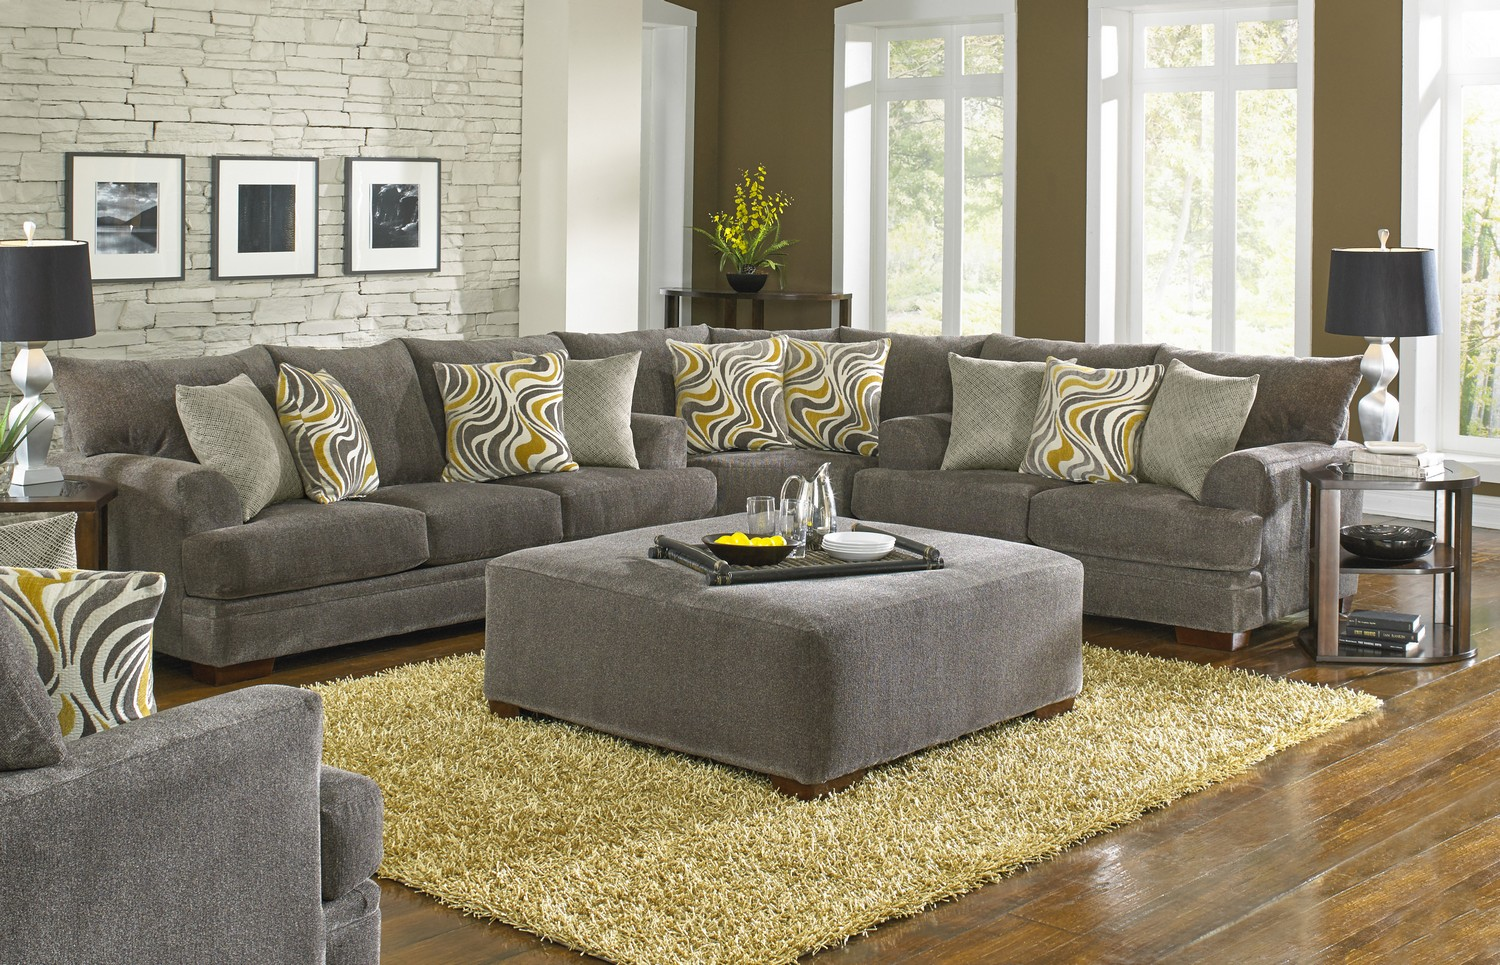 Sofa Set Olx Jaipur Jackson Crompton Sofa Sectional Sofa Set Pewter Jf 4462